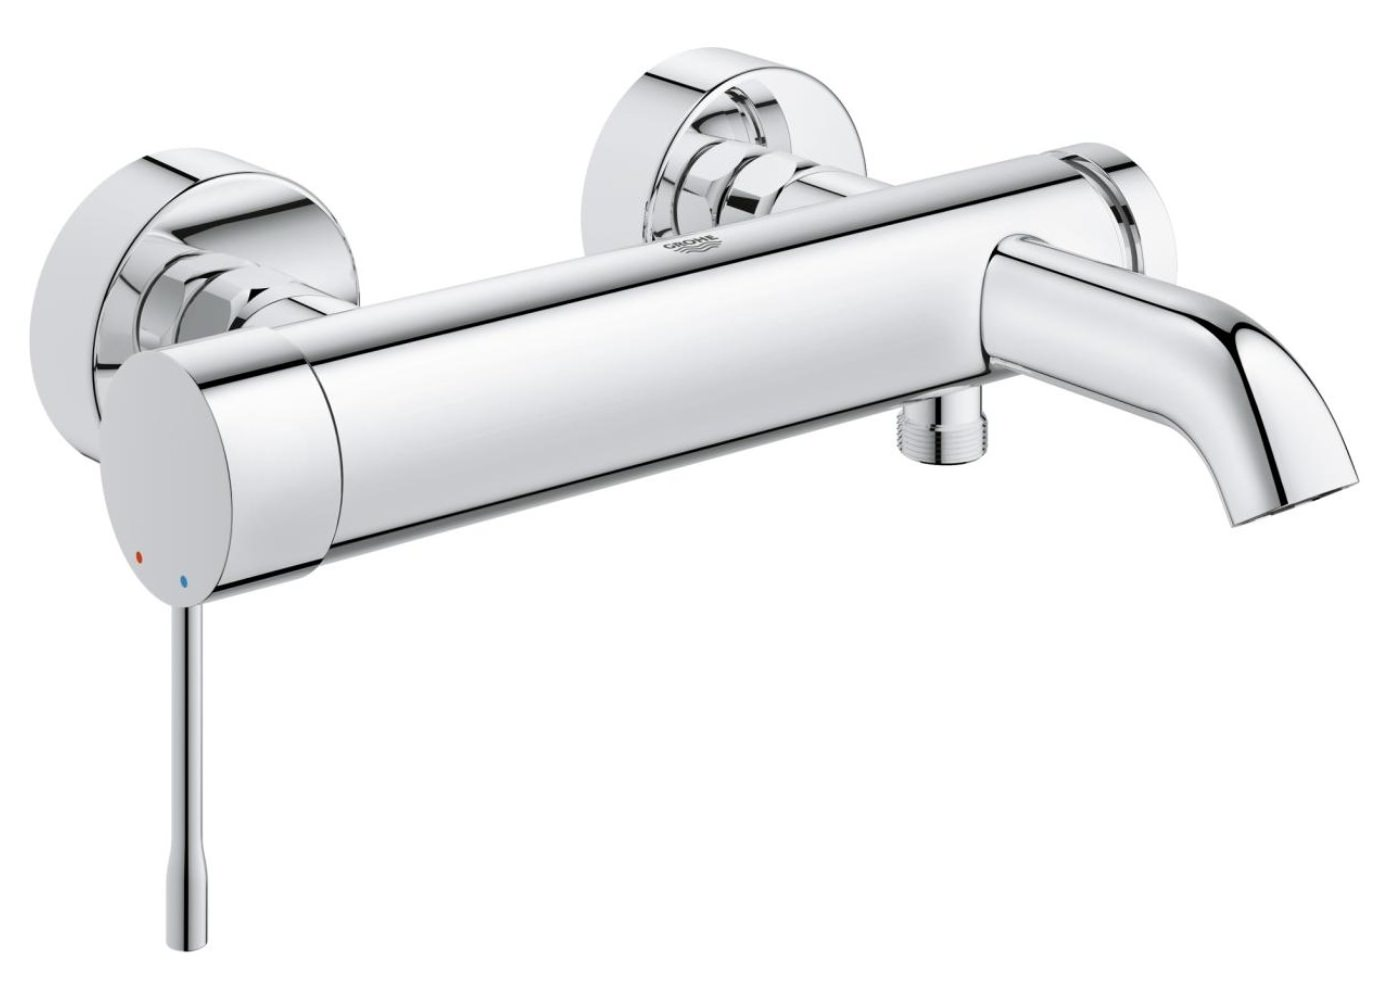 grohe essence new wall mounted bath shower mixer tap. Black Bedroom Furniture Sets. Home Design Ideas